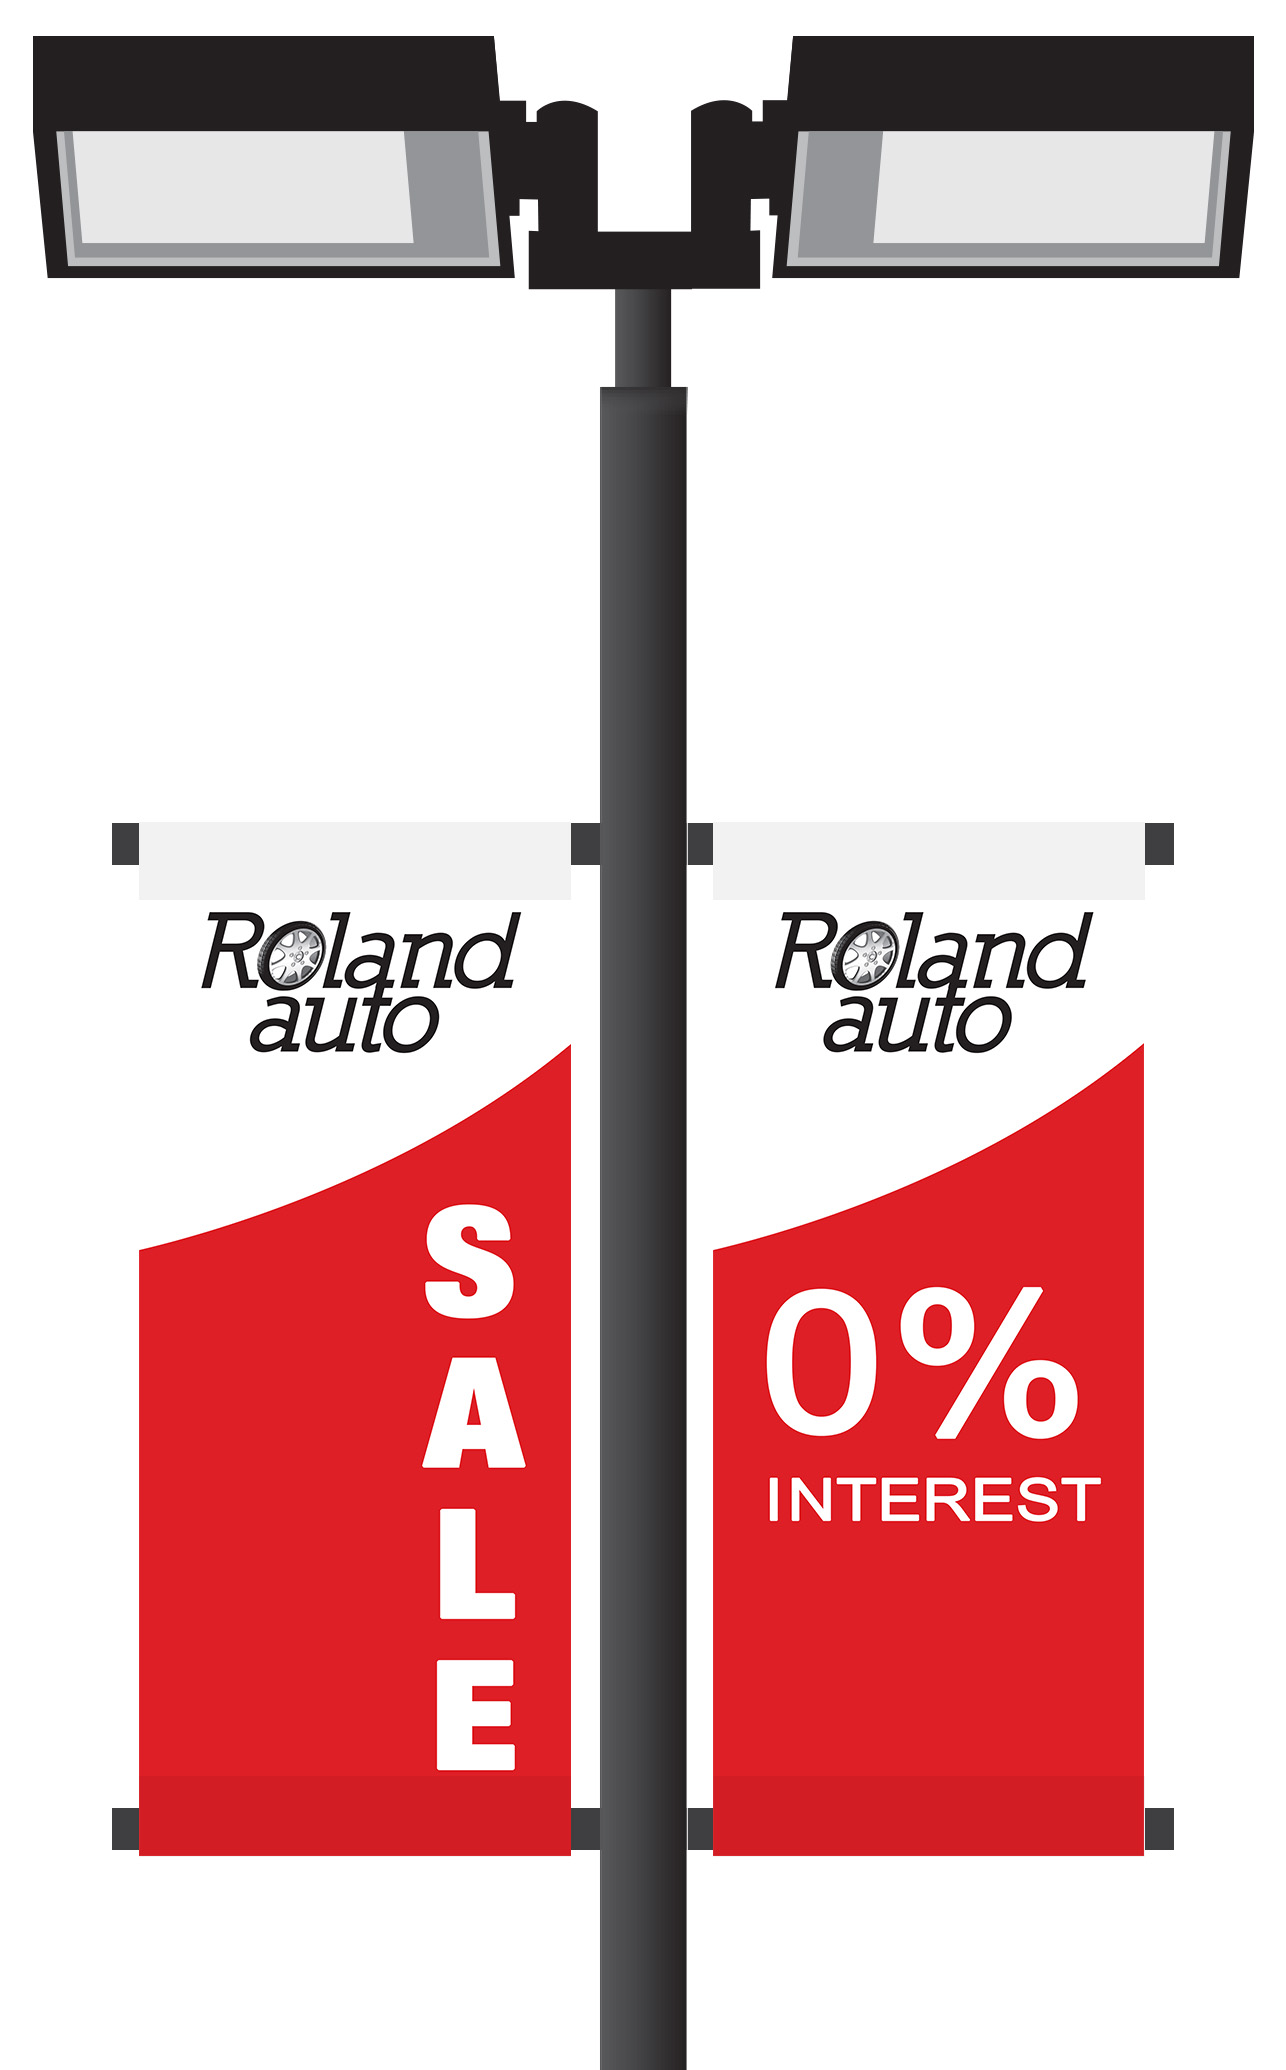 Car Dealership Pole Banners | Banners.com